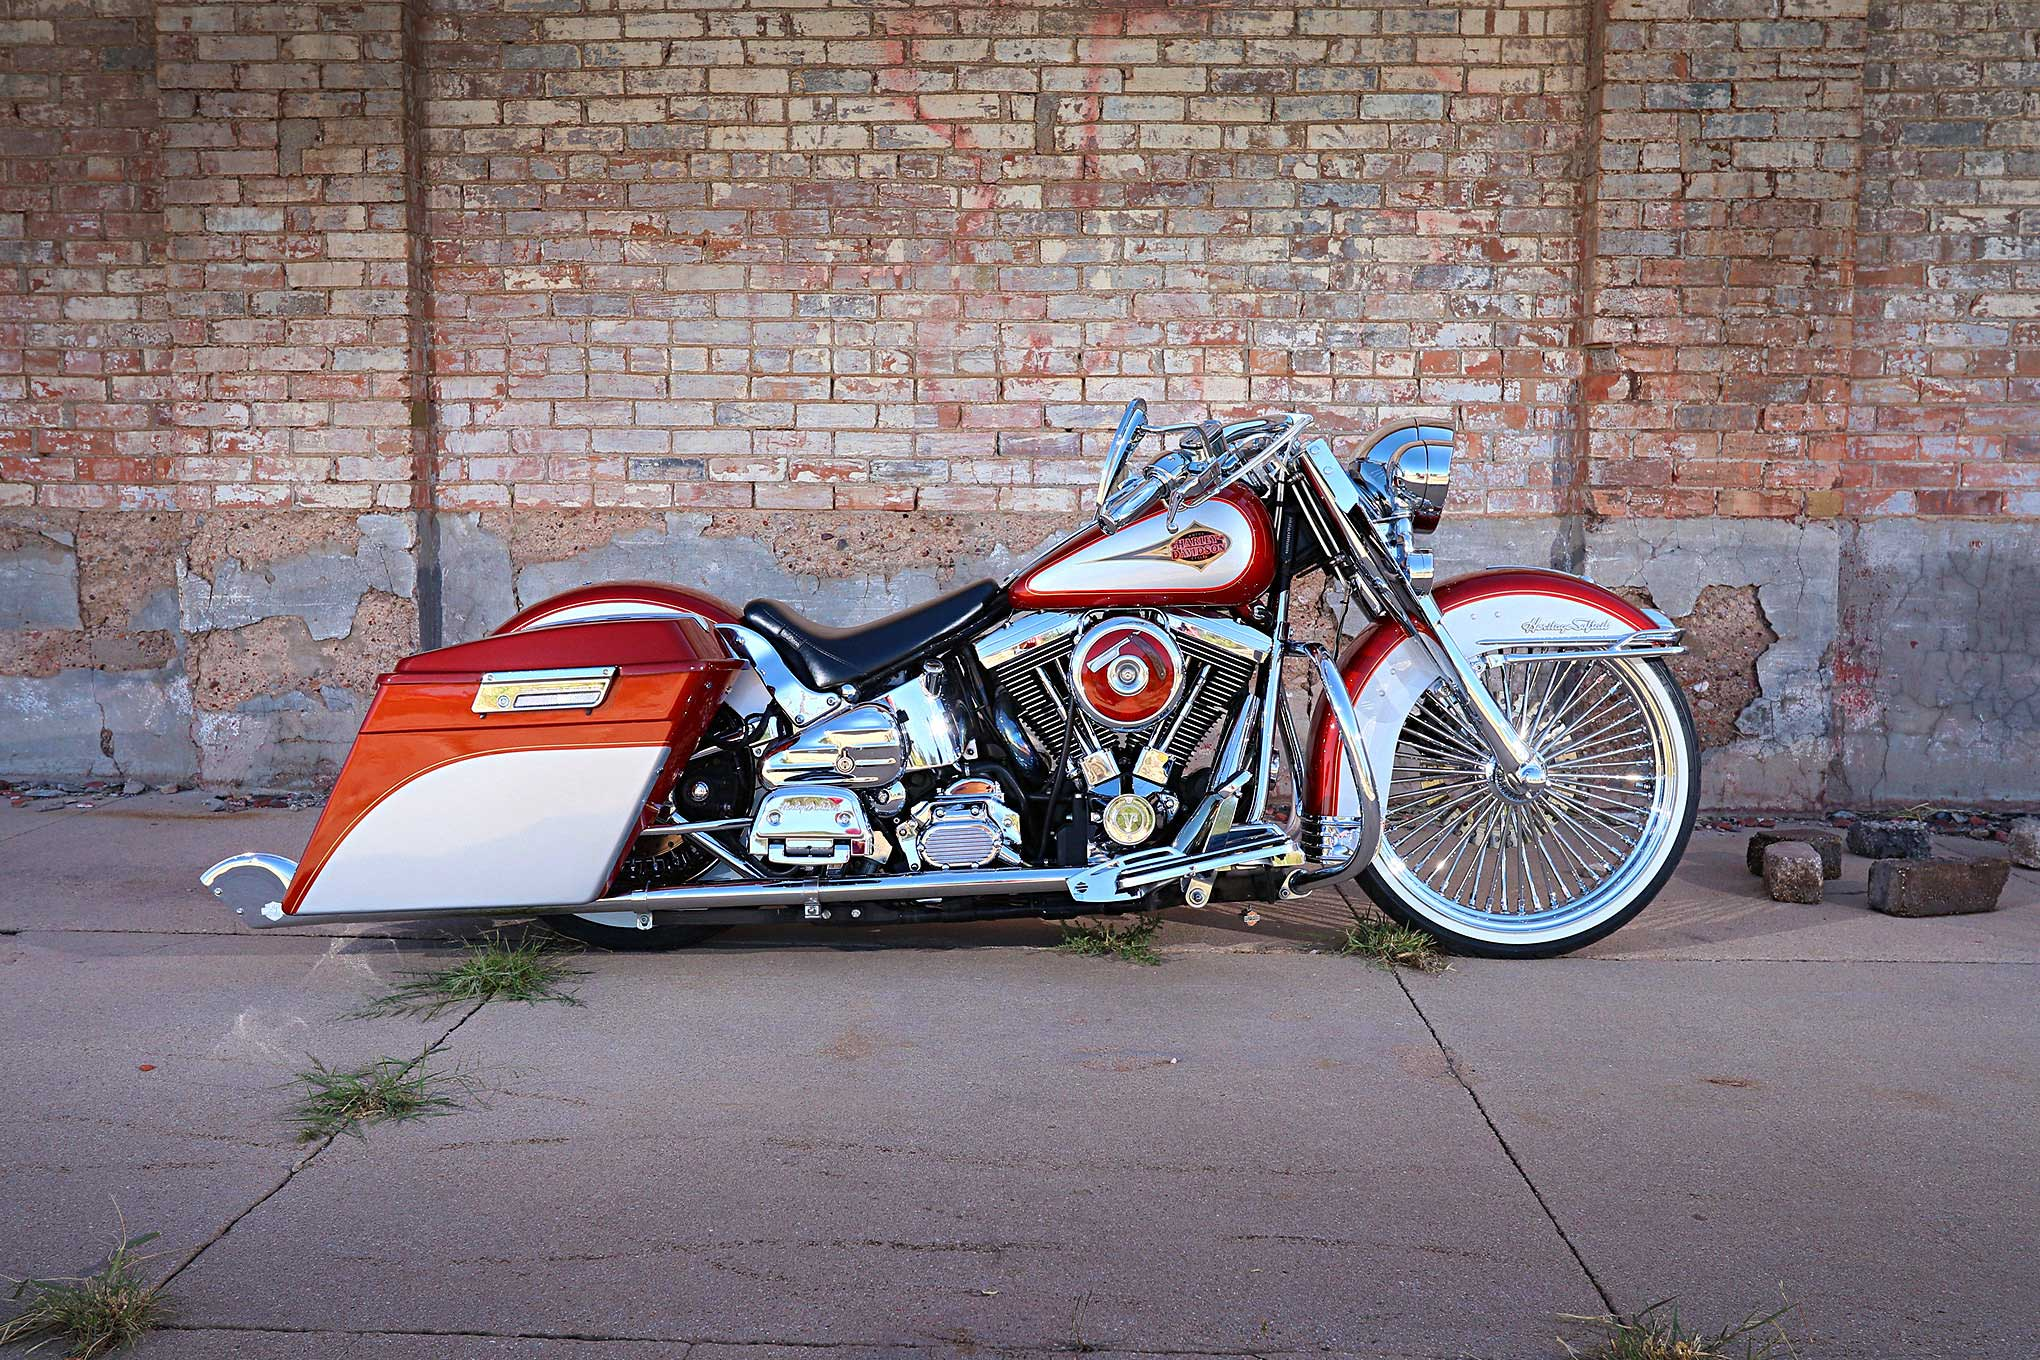 Brilliant Silver Pearl Element additionally Maxresdefault moreover D W G A N Fairing Install Done W G F in addition Ee F A B B Bbe Ad Man Cave Basement Basement Bars in addition Maxresdefault. on harley davidson paint colors